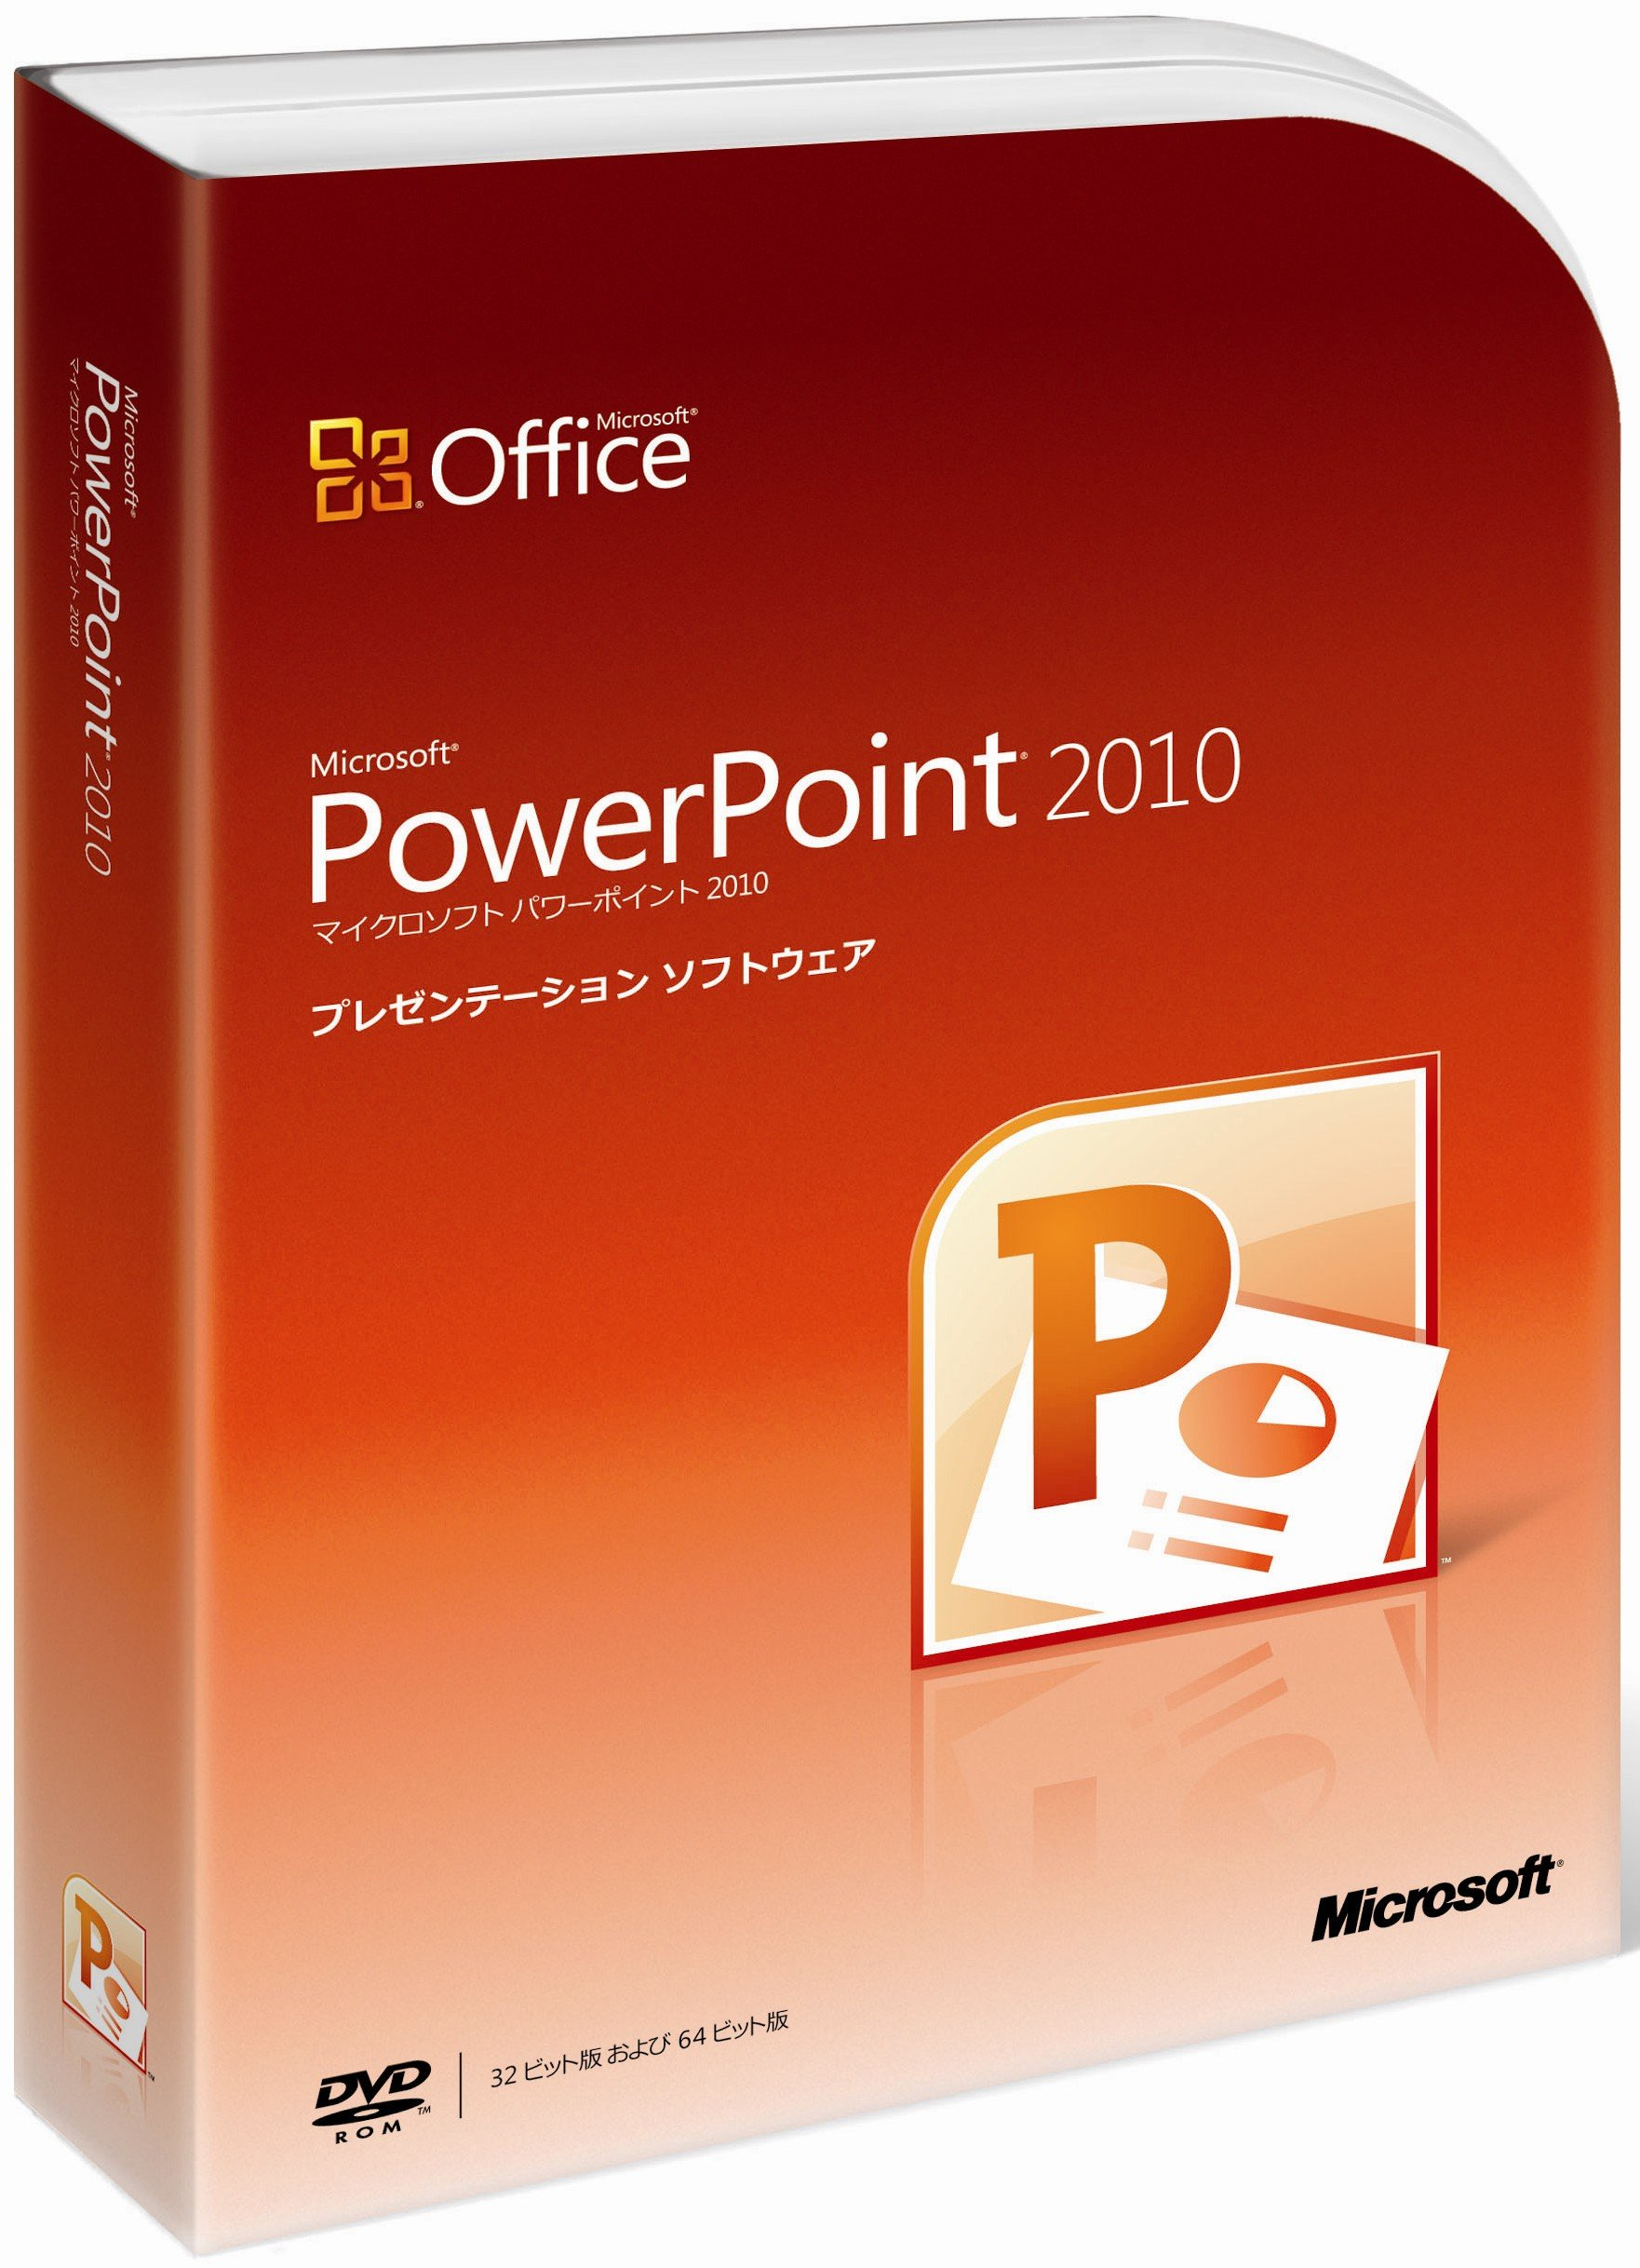 【35%OFF】PowerPoint 2010